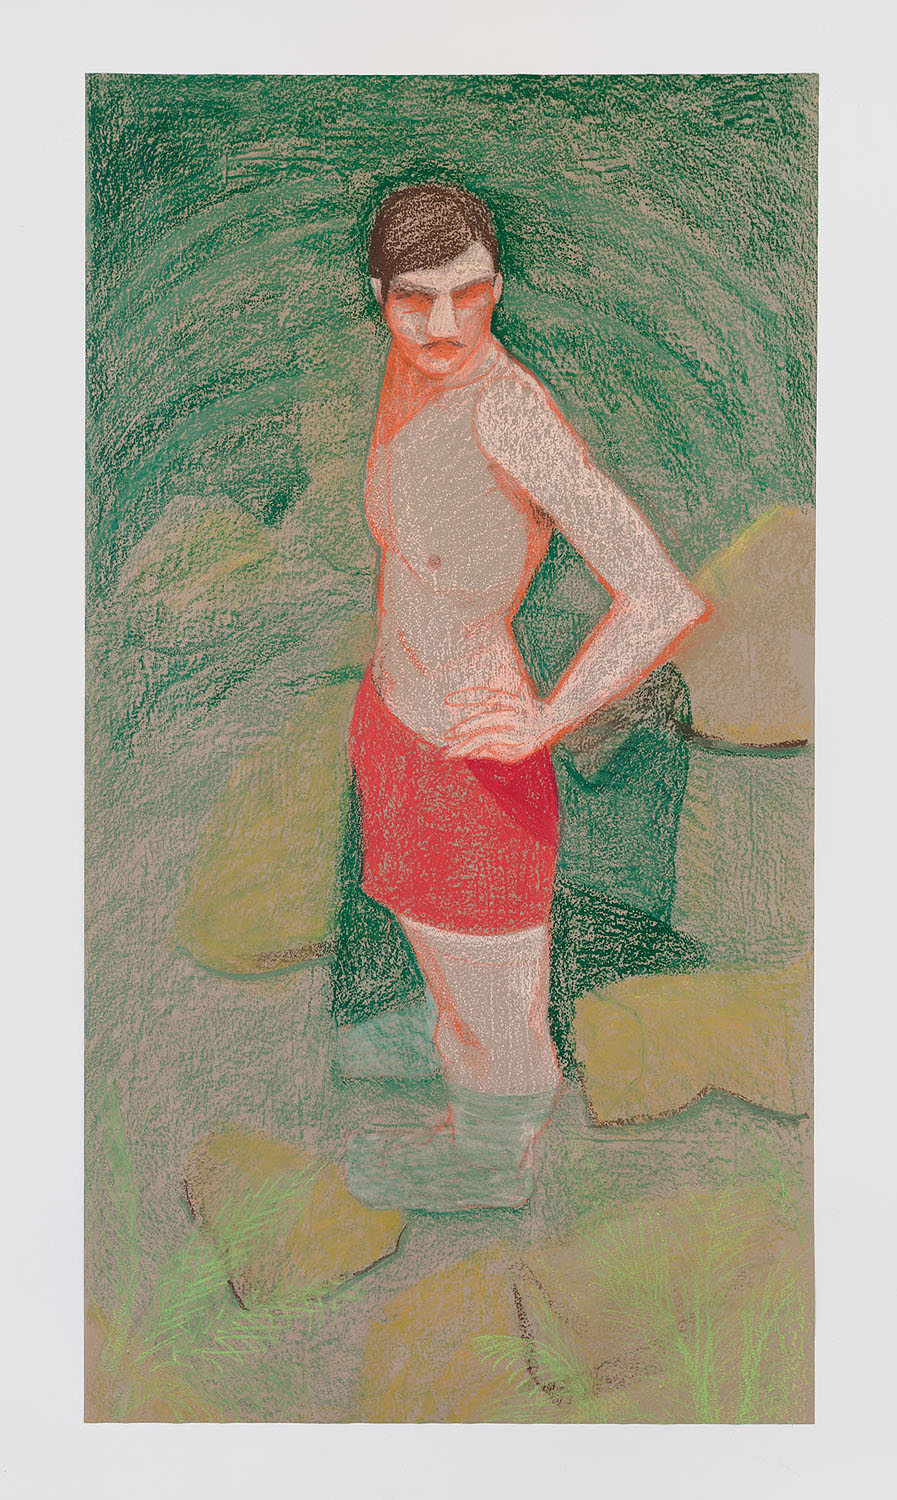 Anahid Mishek    Bather , 2017  Oil stick on paper  54 x 35.5 inches